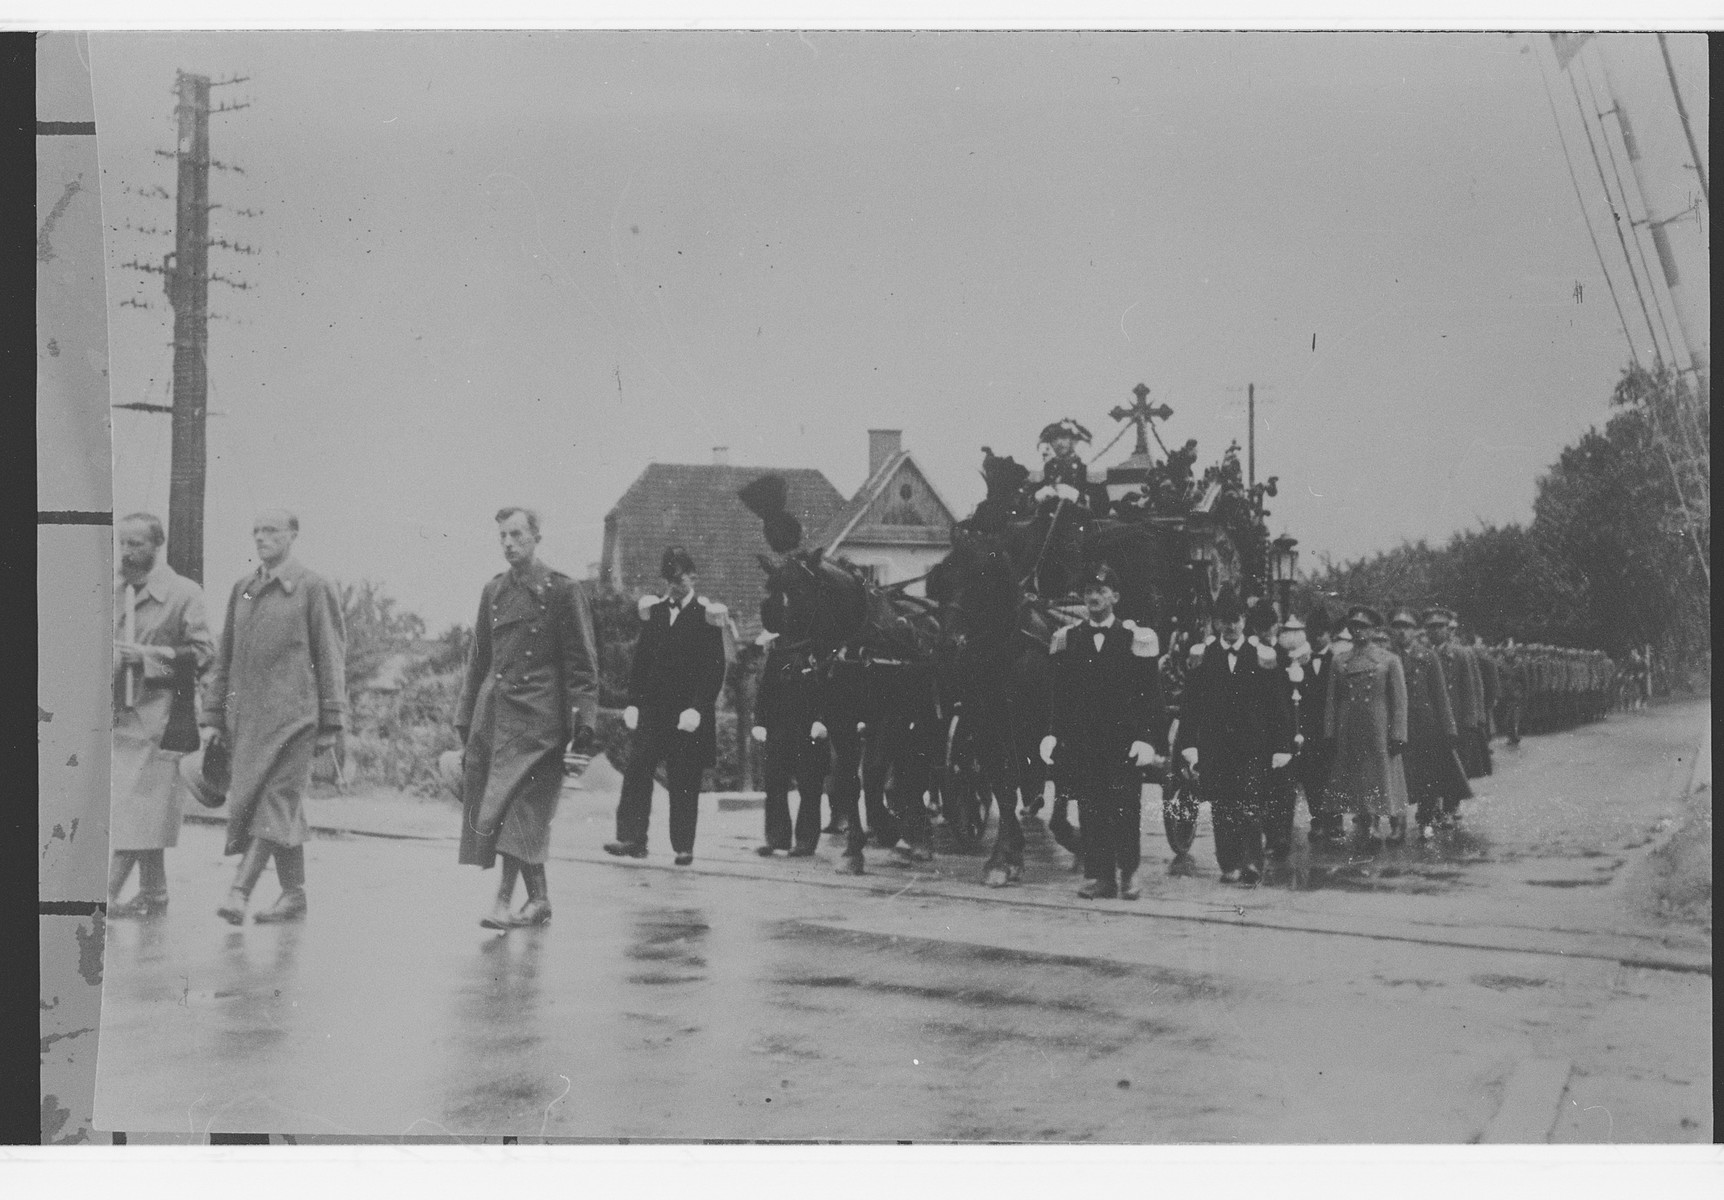 Father Bruno (Henri Reynders) leads a military funeral procession while serving as a chaplain in a prisoner of war camp.